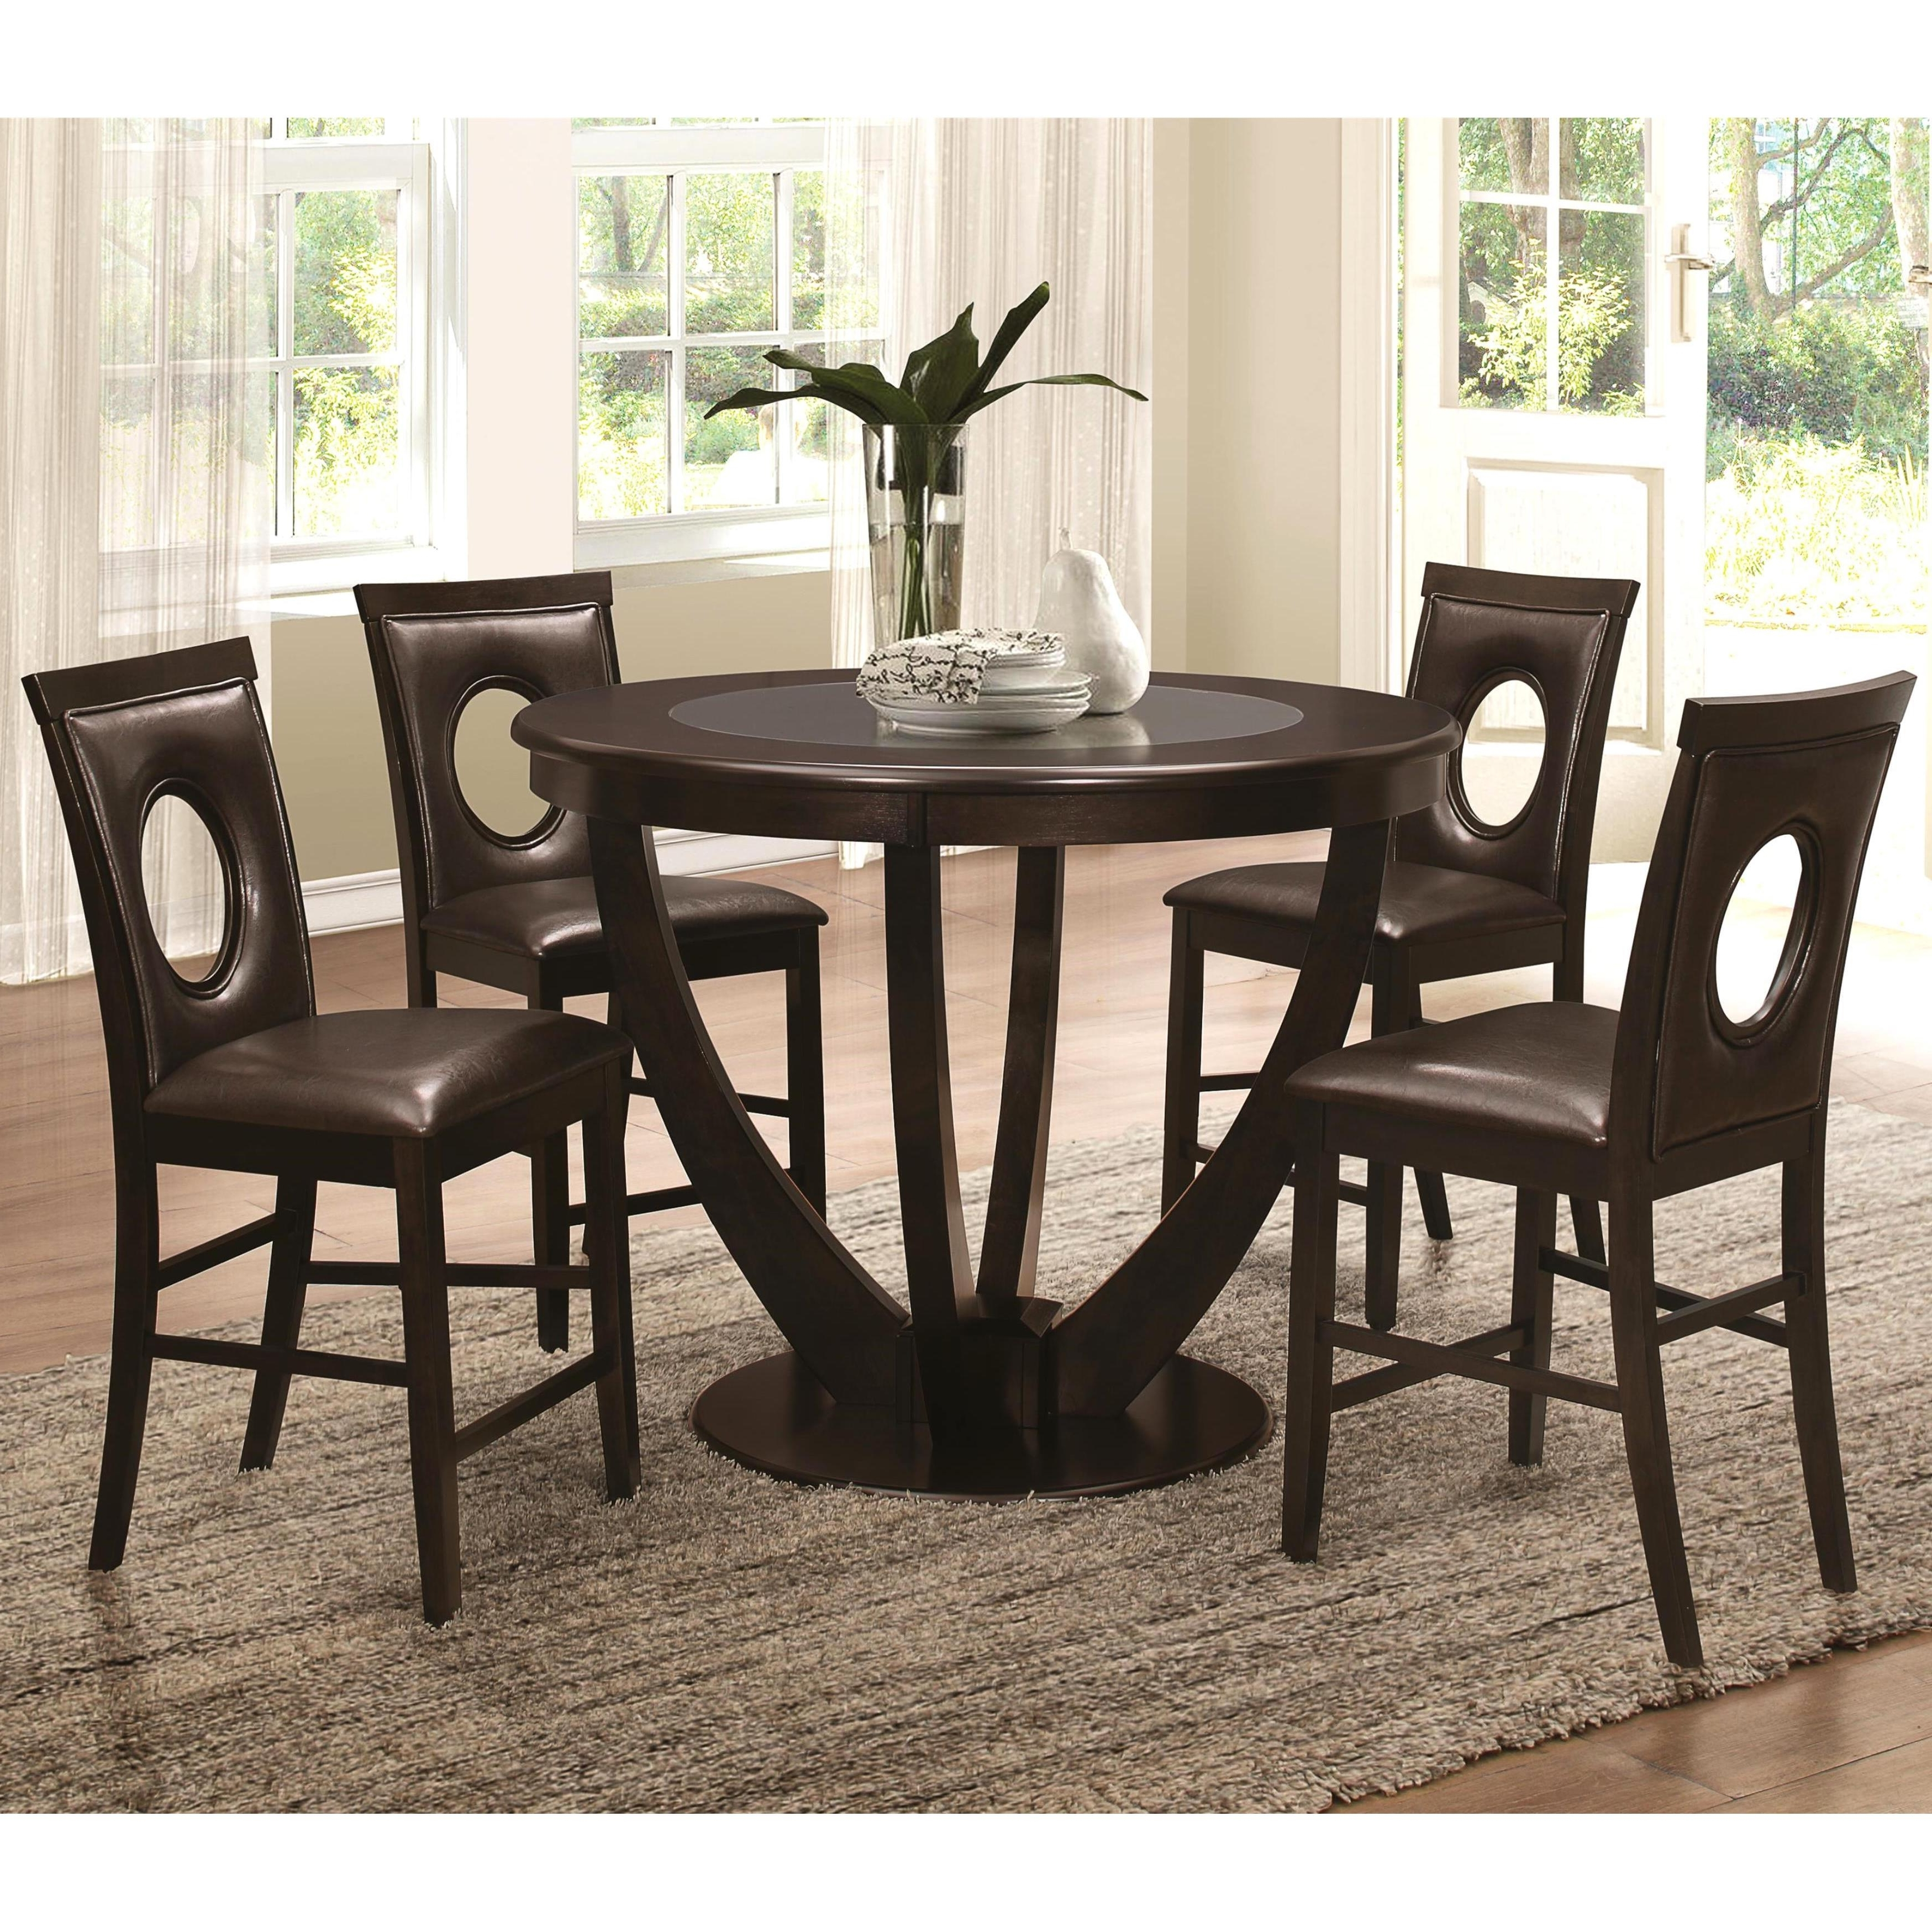 Famous Valencia 5 Piece Counter Sets With Counterstool Regarding Shop Valencia Casual 5 Piece Counter Height Dininig Set With Black (View 12 of 25)